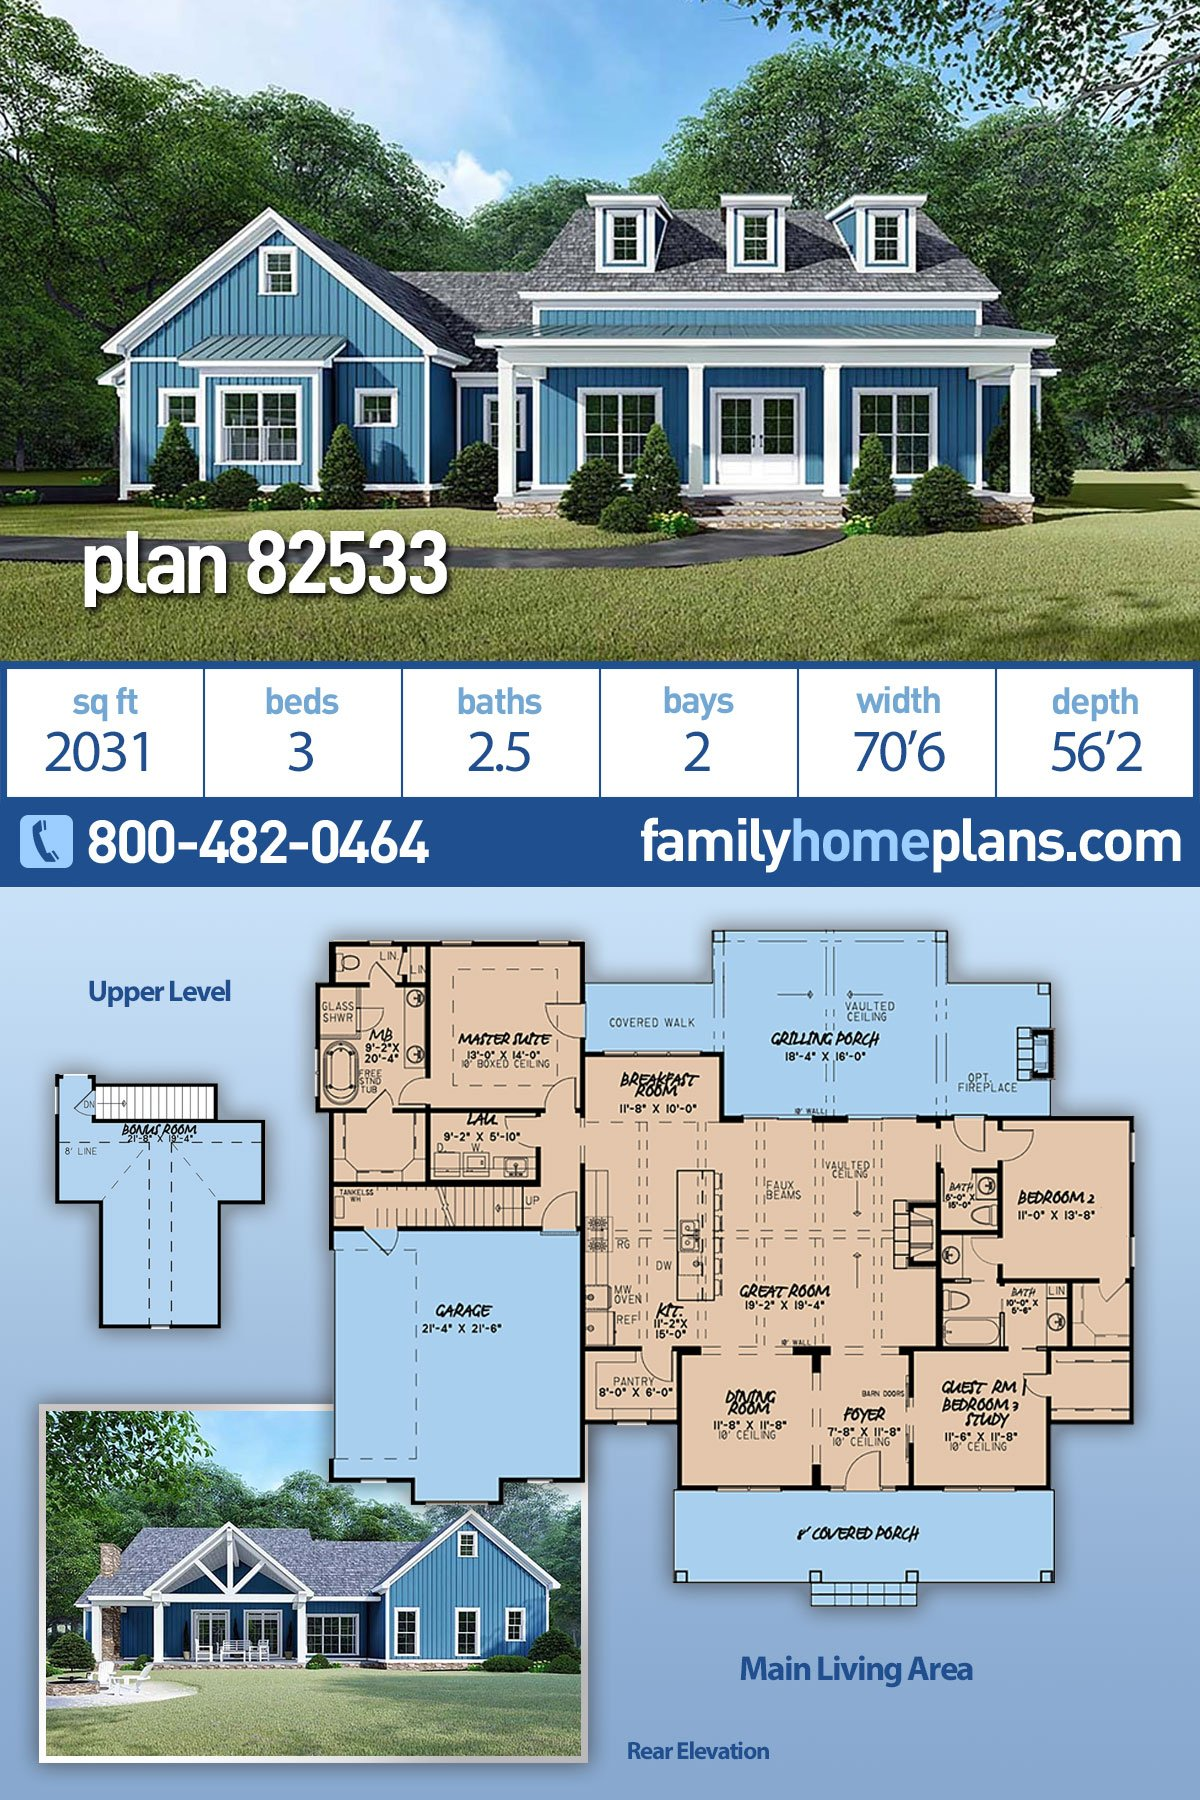 Bungalow, Country, Craftsman, Farmhouse House Plan 82533 with 3 Beds, 3 Baths, 2 Car Garage